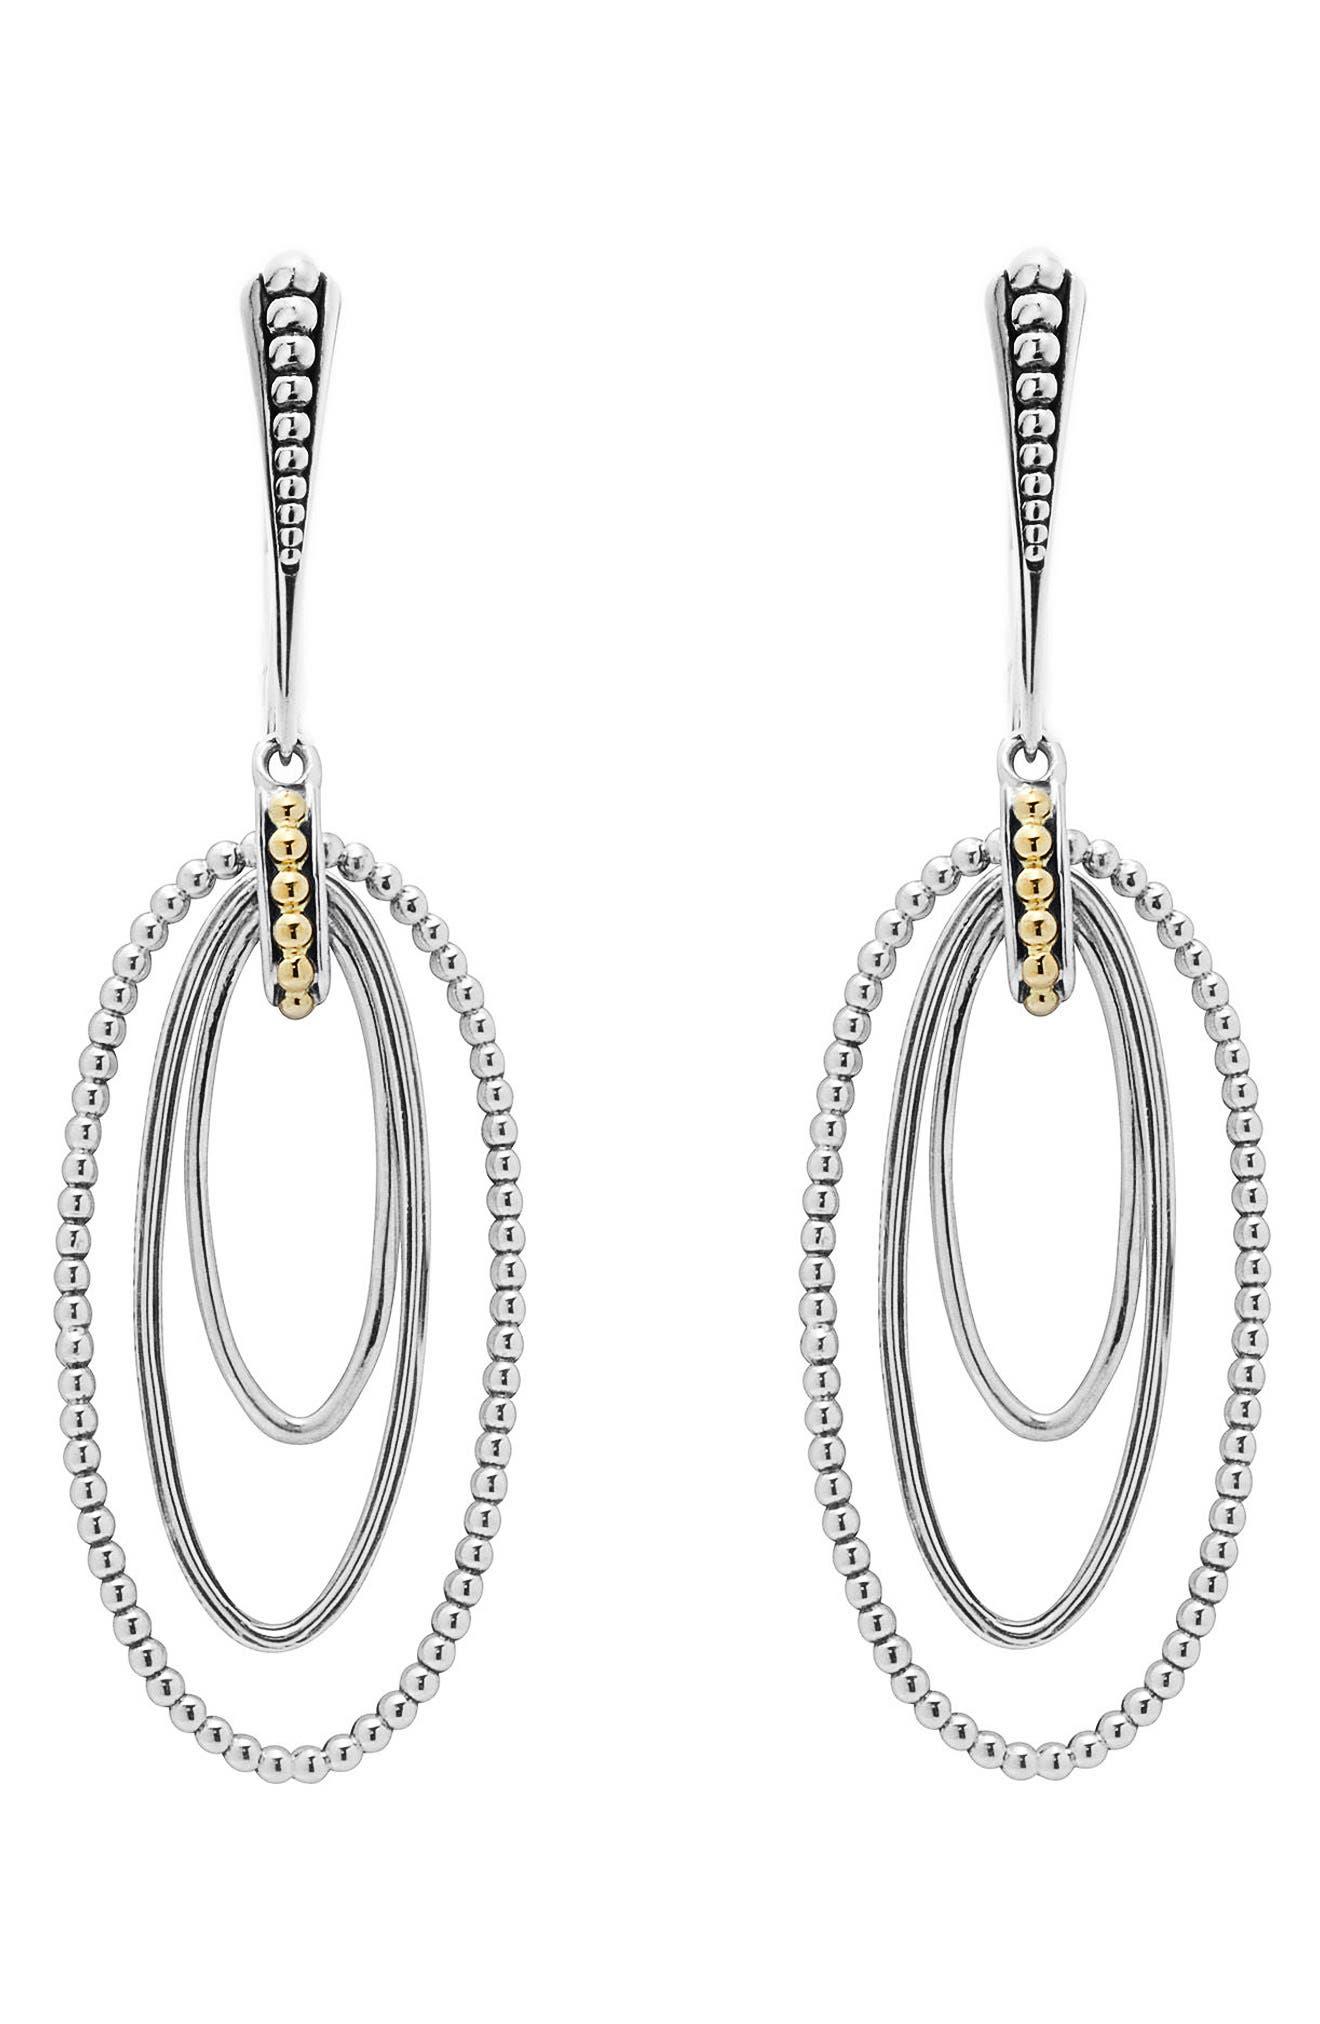 Caviar 'Superfine' Two-Tone Drop Earrings,                             Alternate thumbnail 2, color,                             SILVER/ GOLD